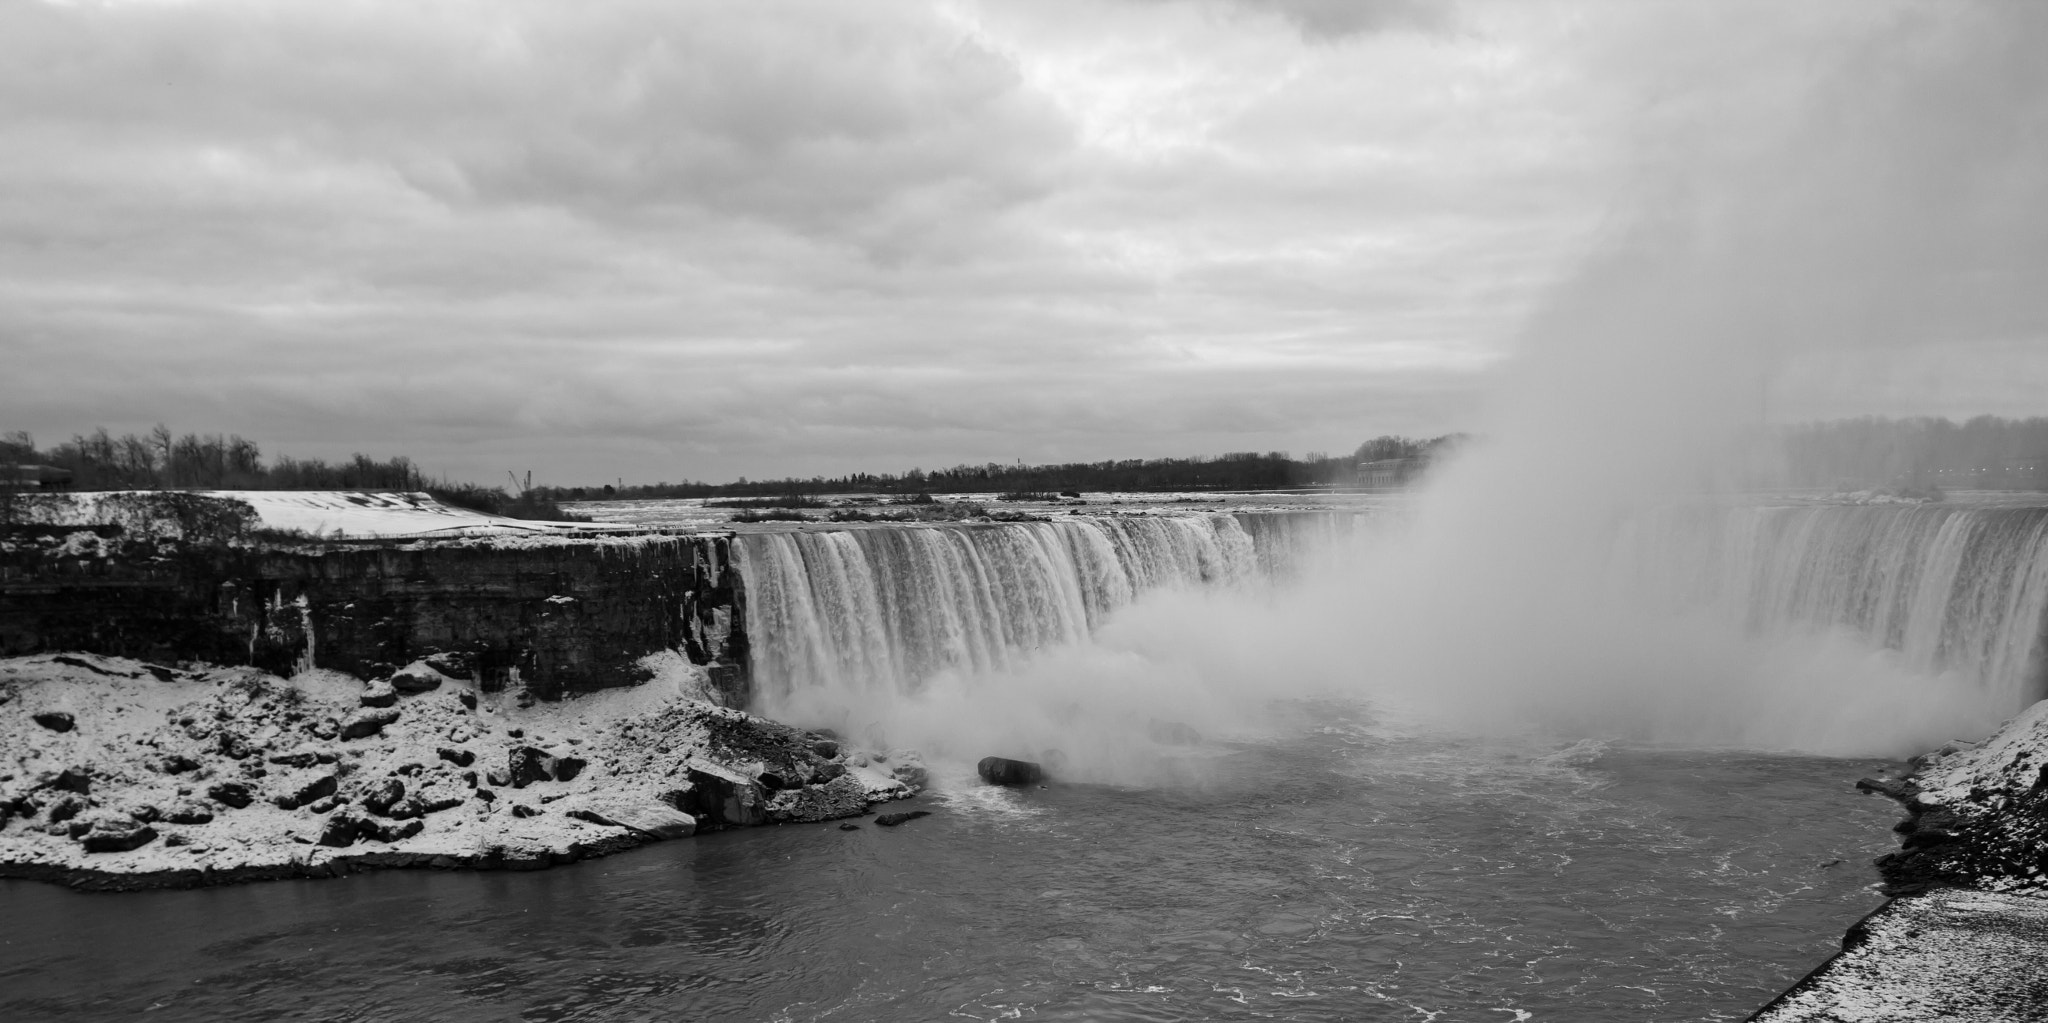 Photograph Niagra Falls by Amgad G. Soliman on 500px